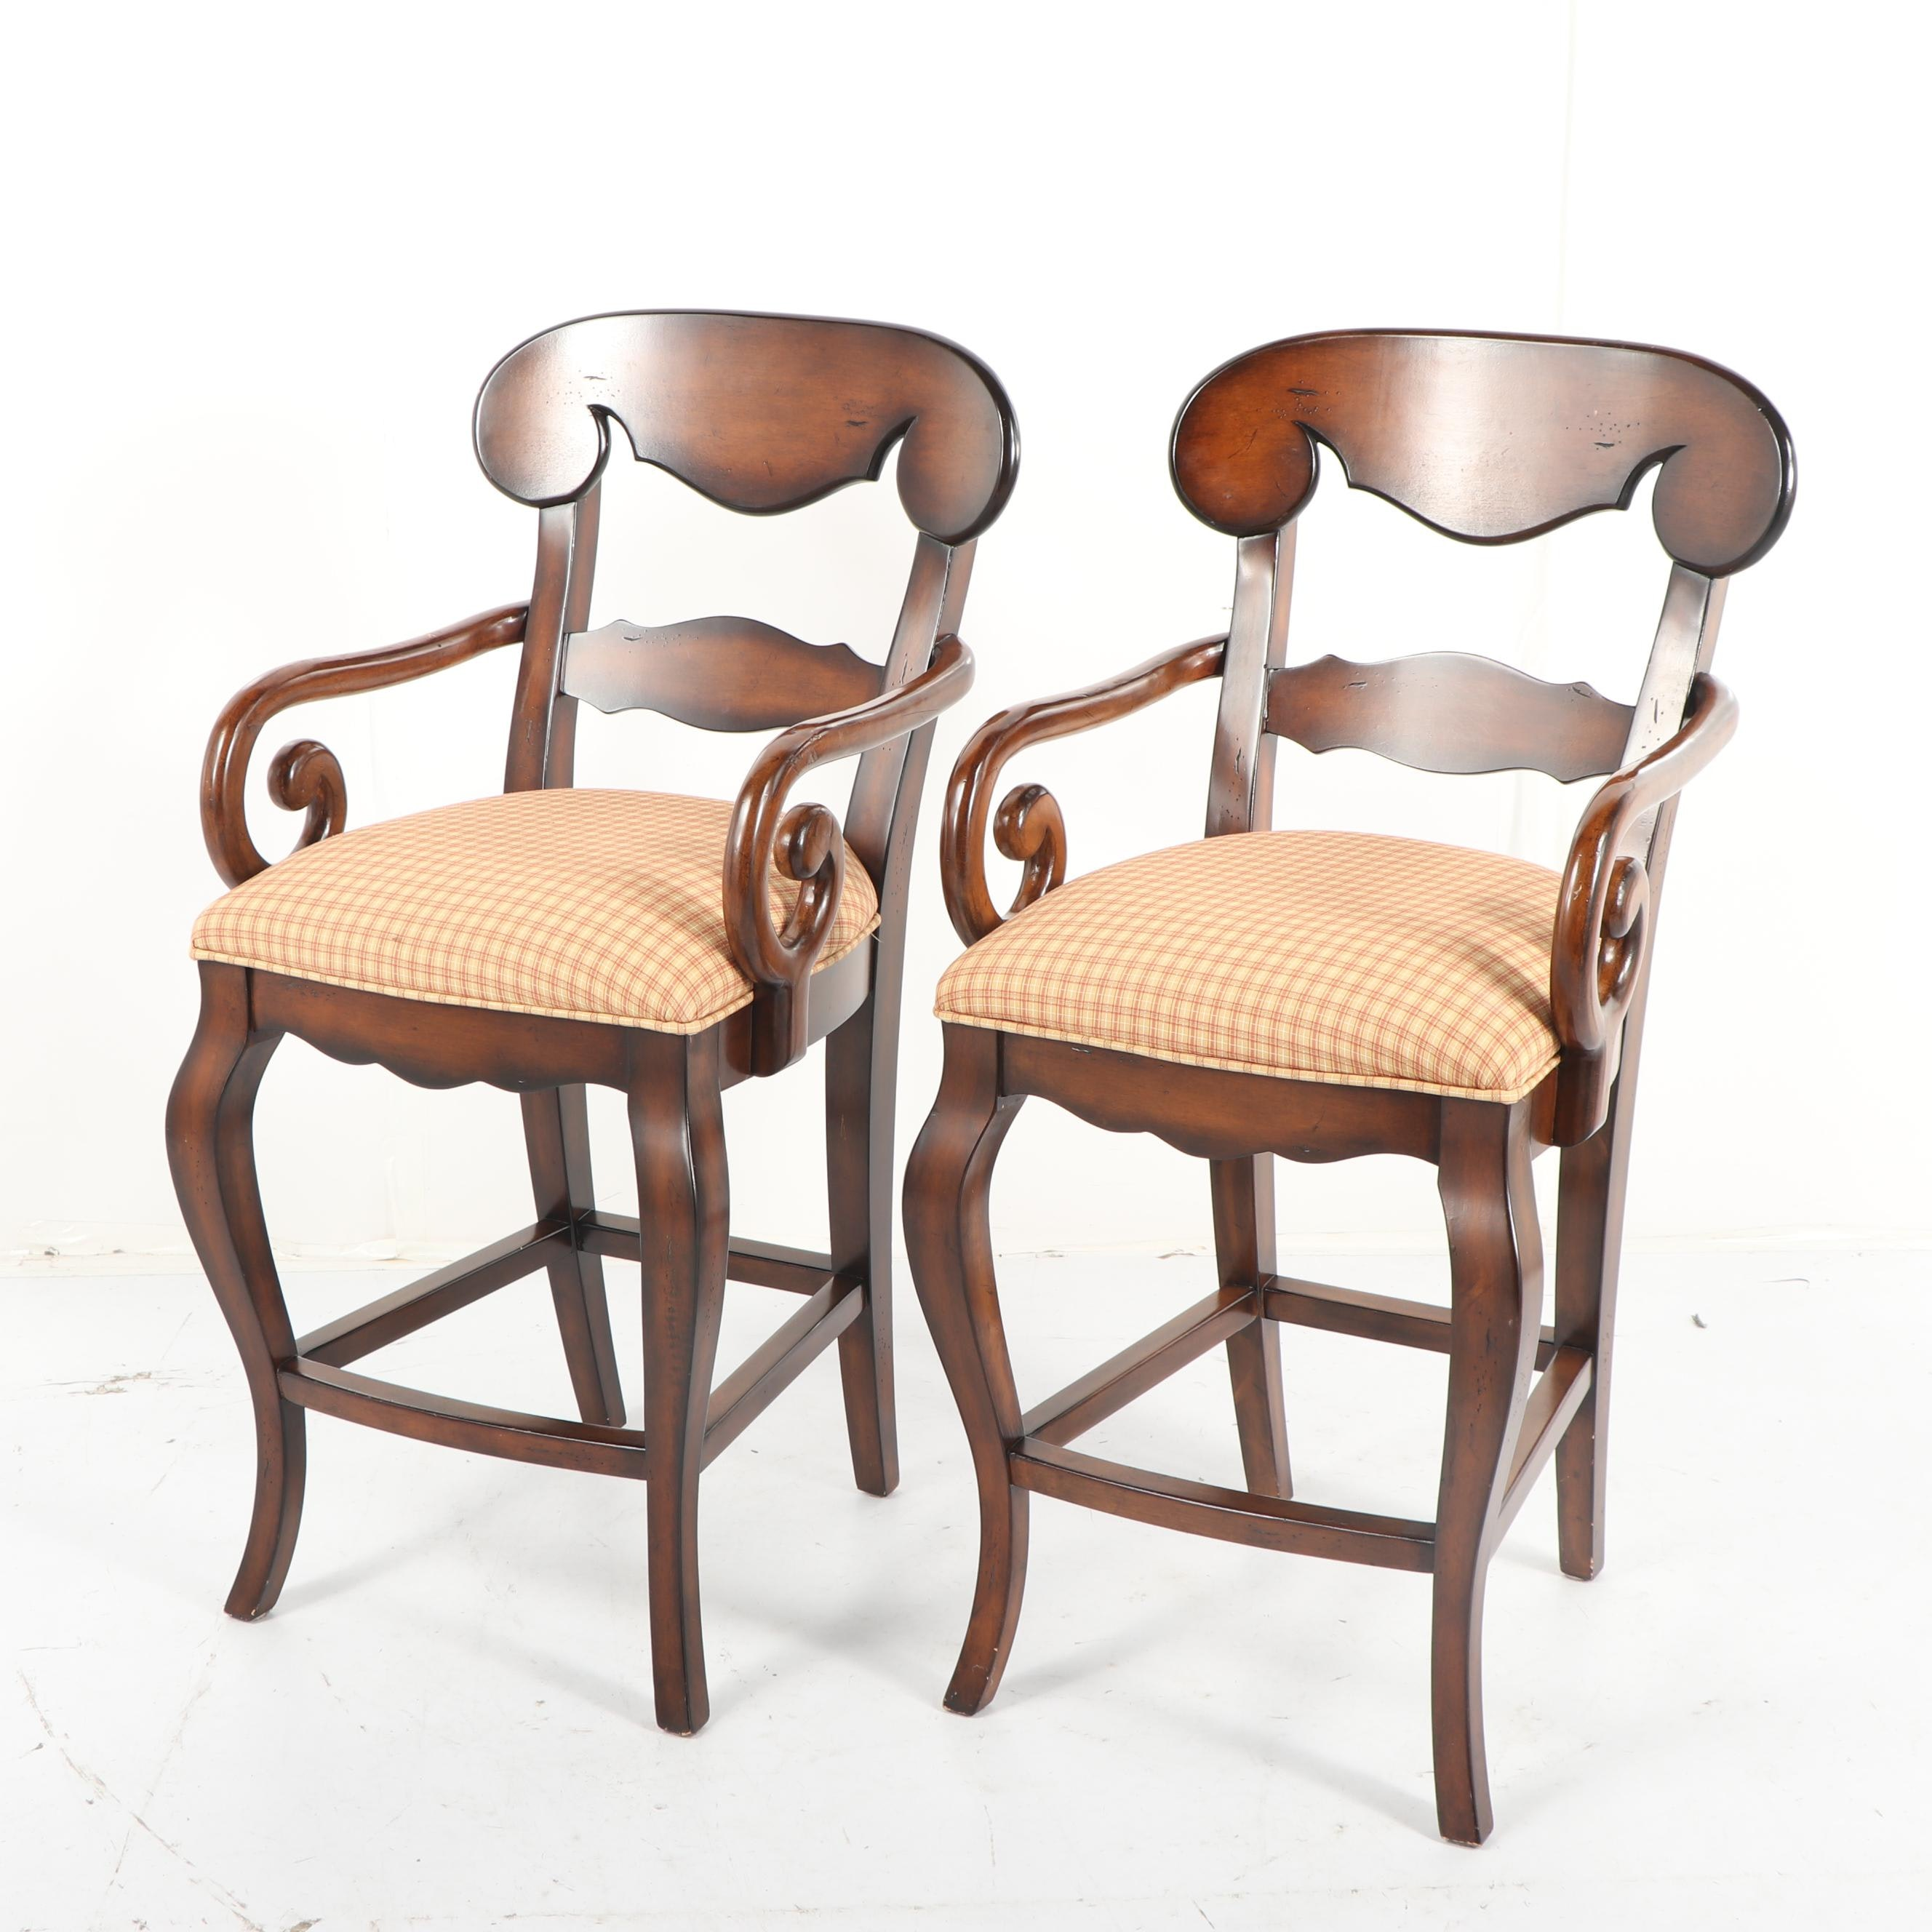 Empire Style Barstools by Hooker Furniture, 21st Century